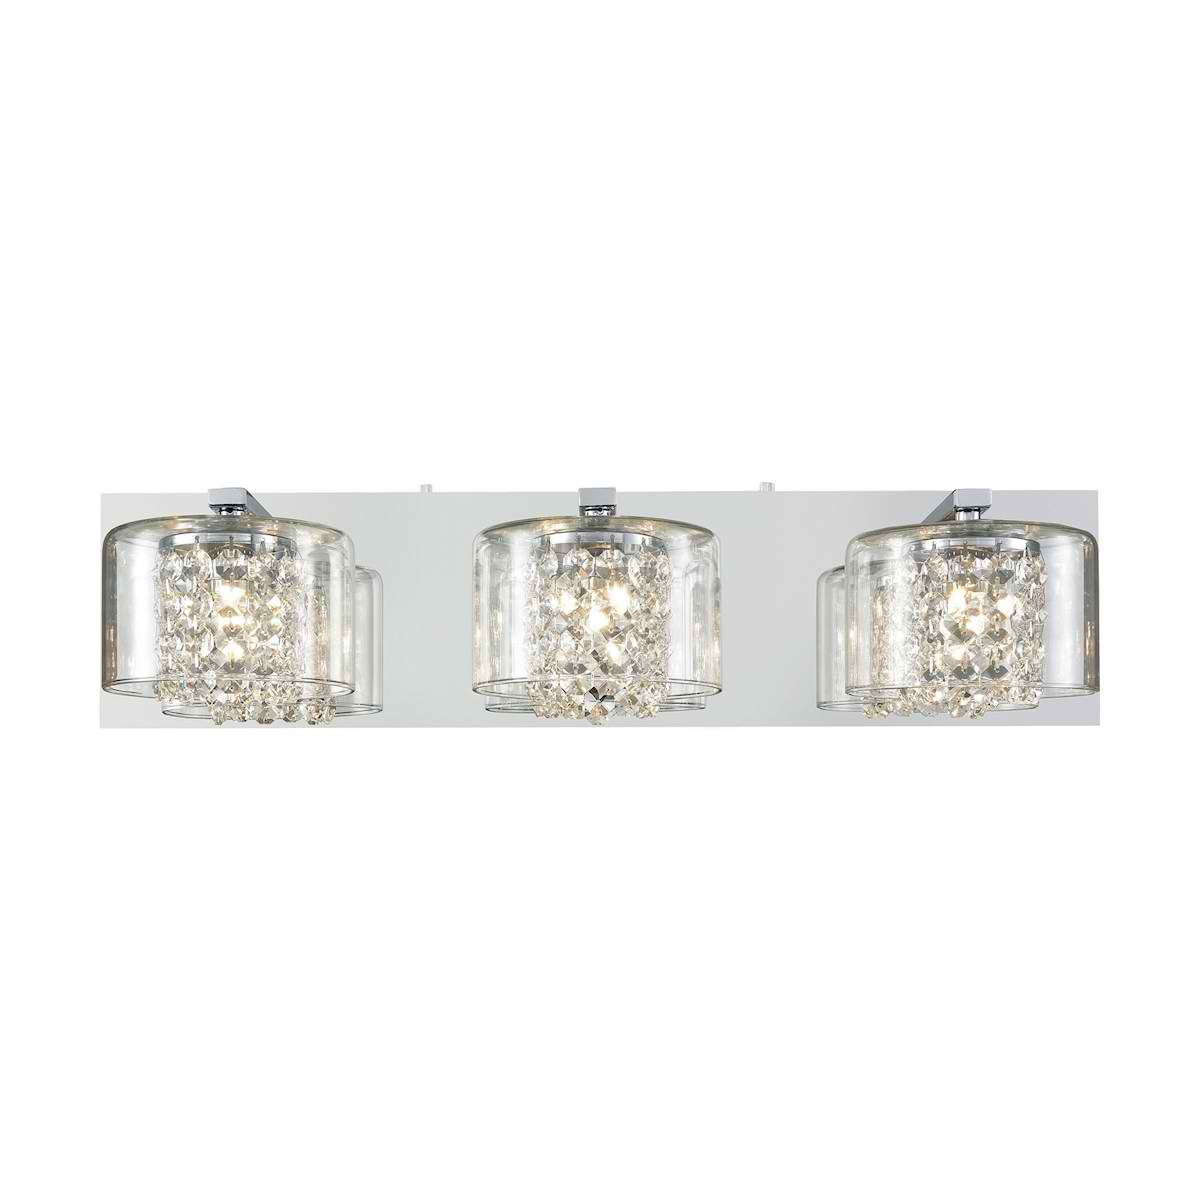 Springvale 3 Light Vanity in Polished Chrome with Clear Crystal and Glass